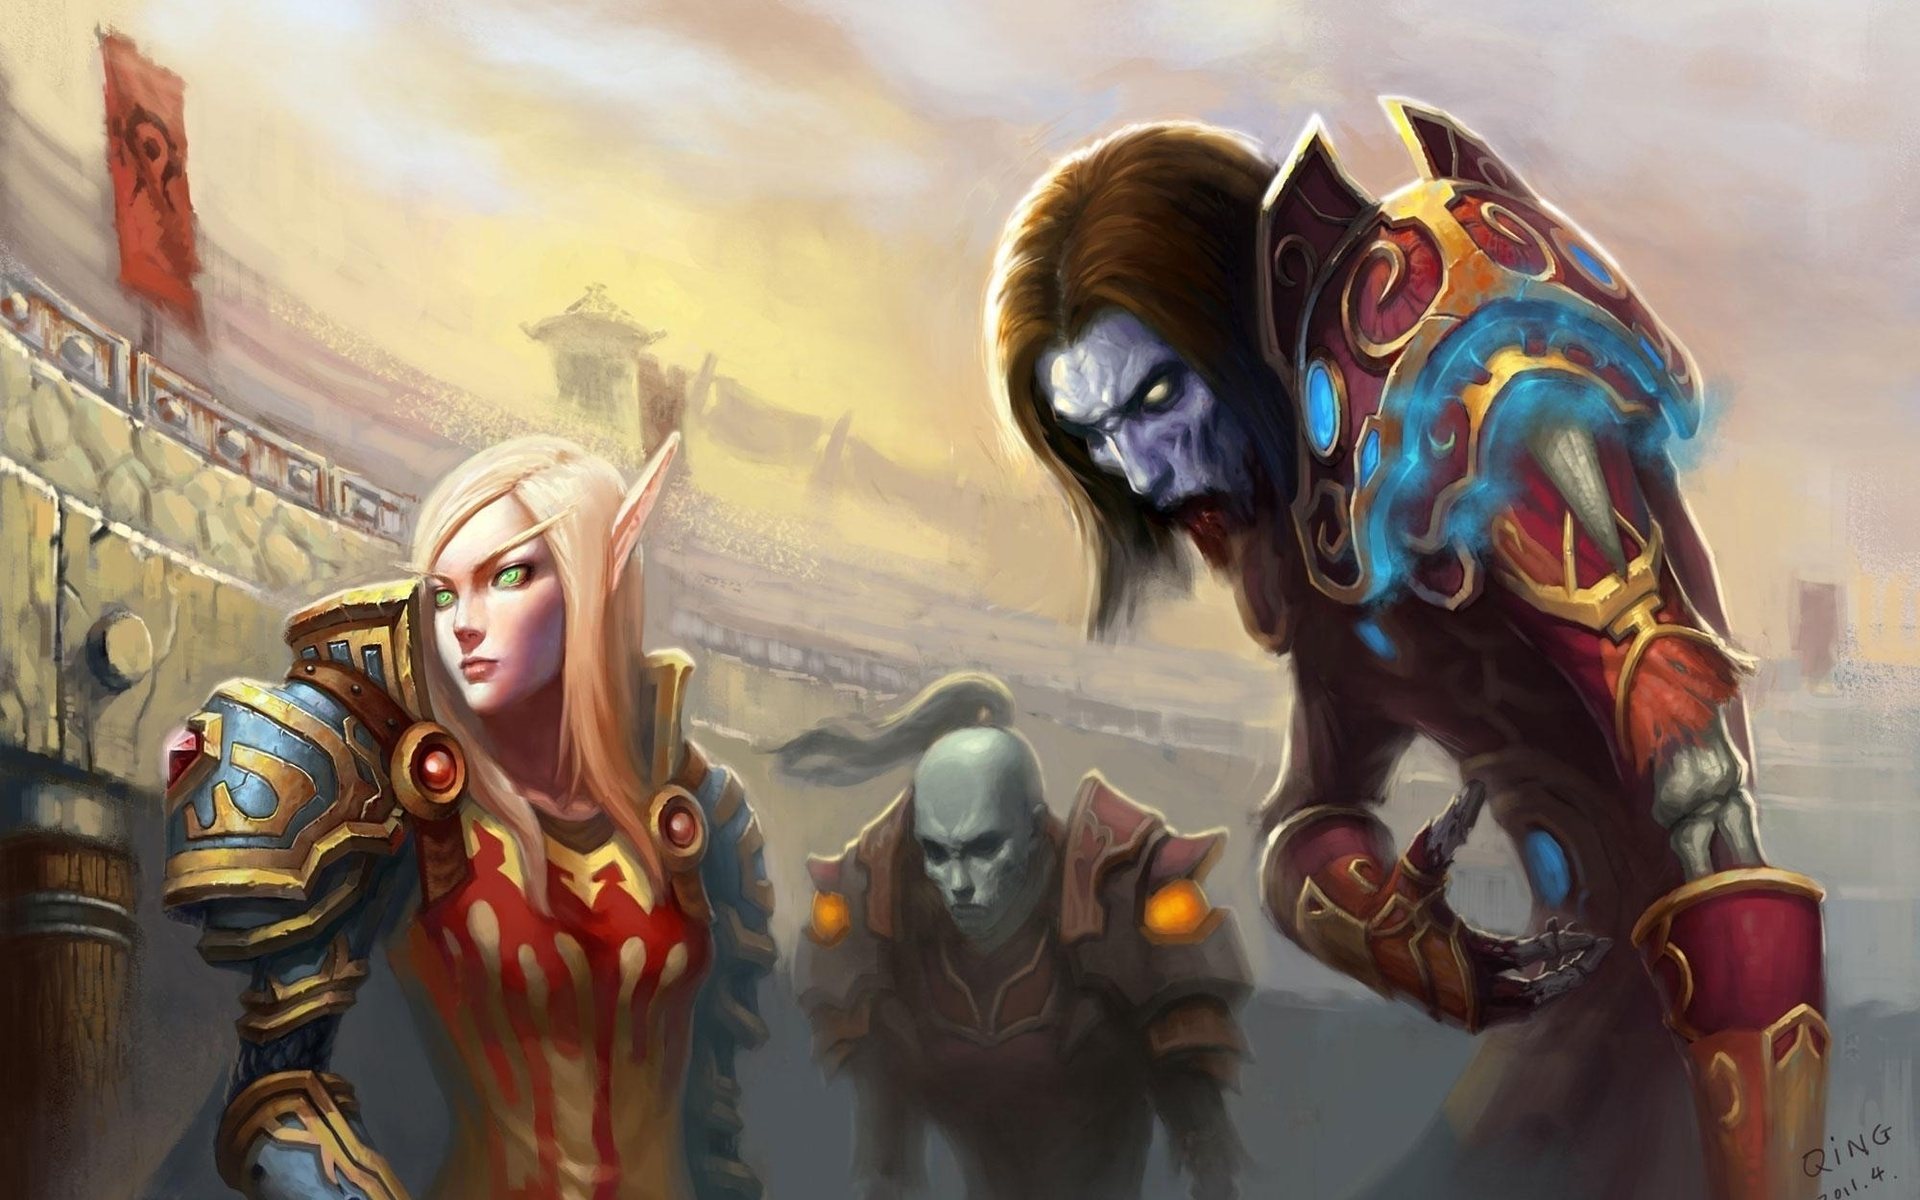 http://img110.xooimage.com/files/5/e/f/world-of-warcraft...ge-arena-52f3921.jpg